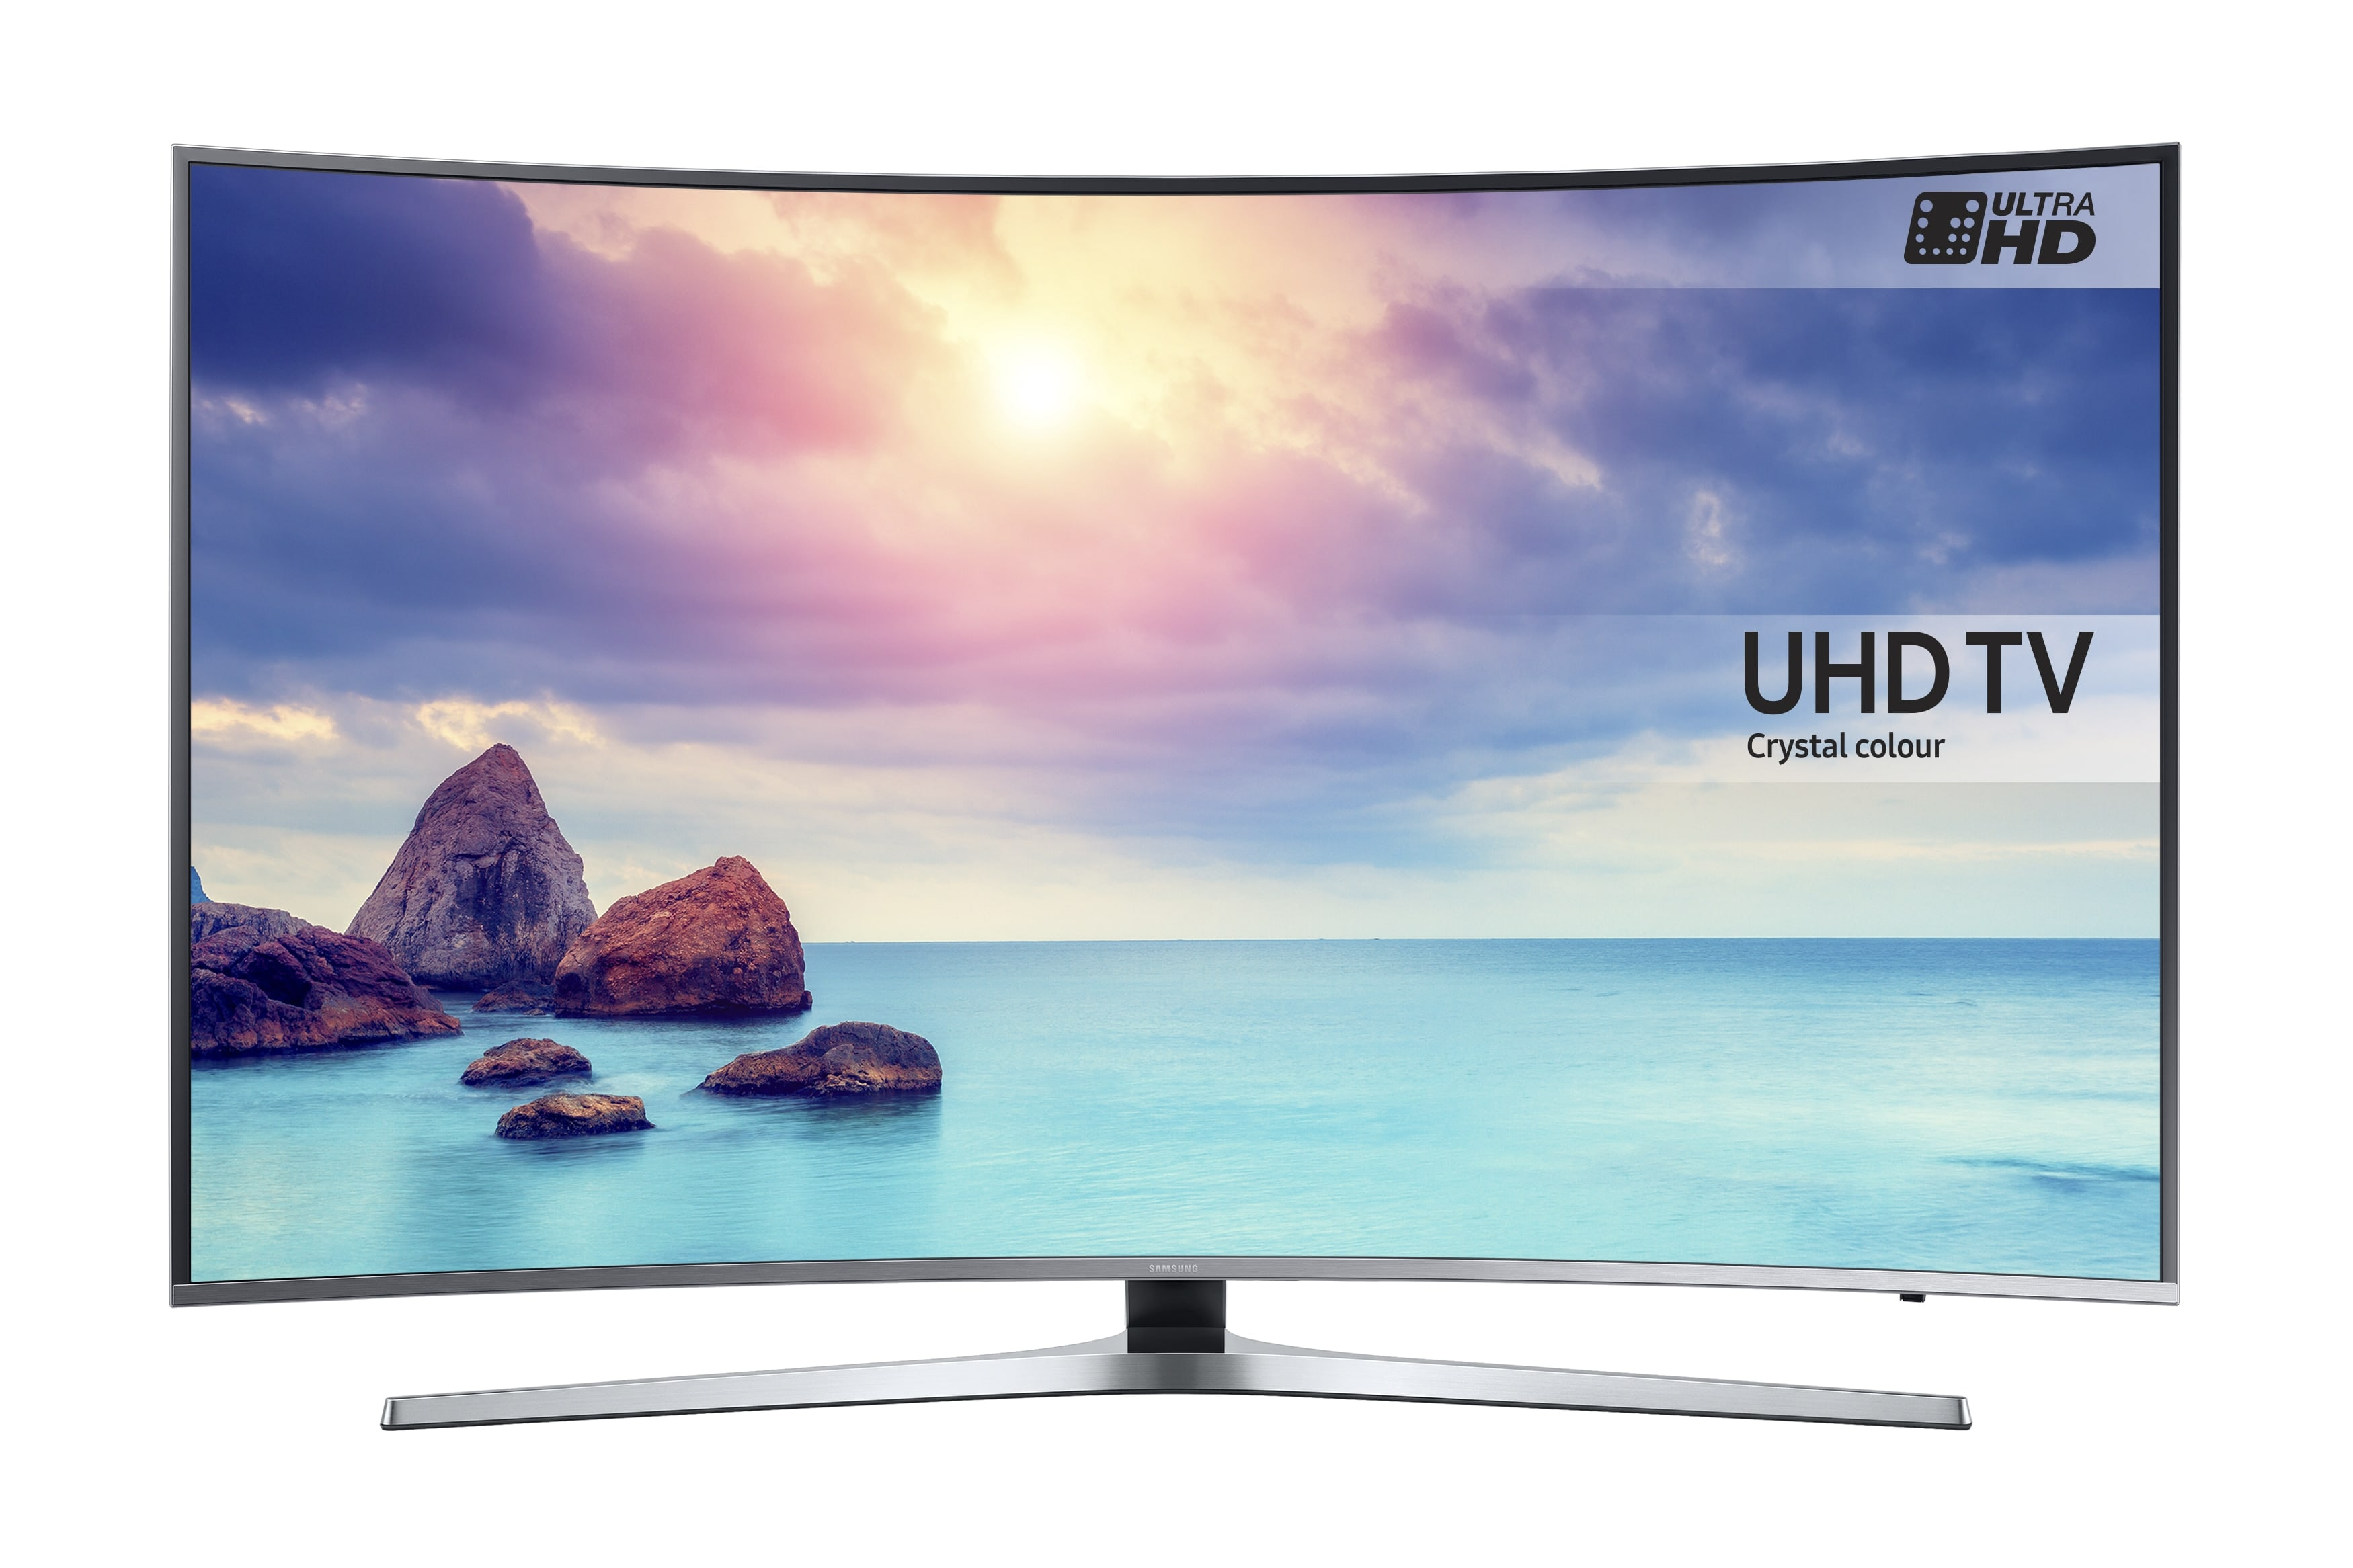 6-Series Curved Crystal Color UHD TV UE43KU6670